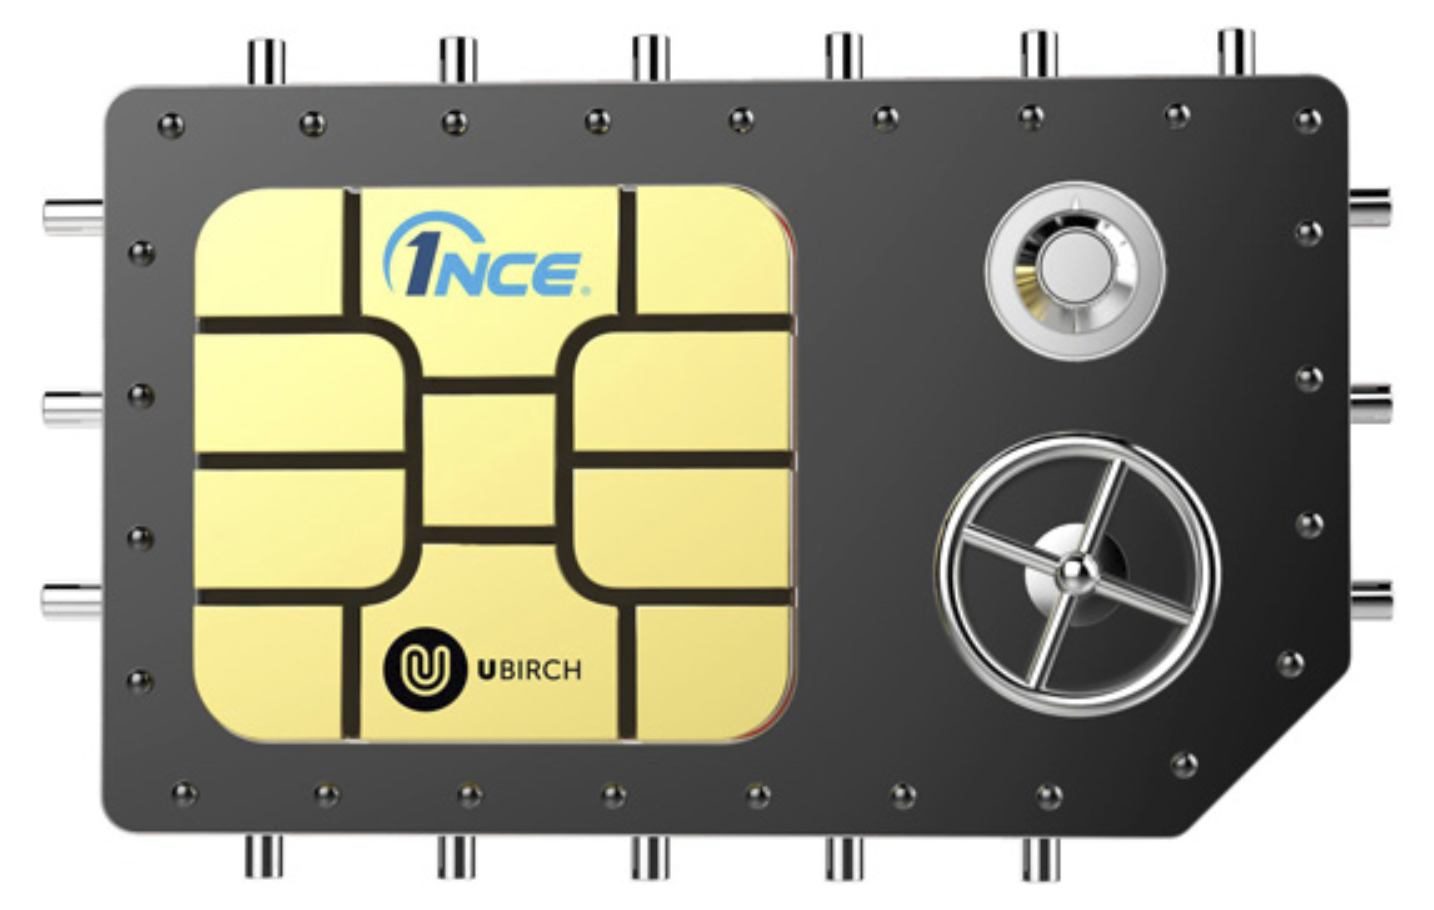 1NCE and Ubirch put blockchain on SIM card